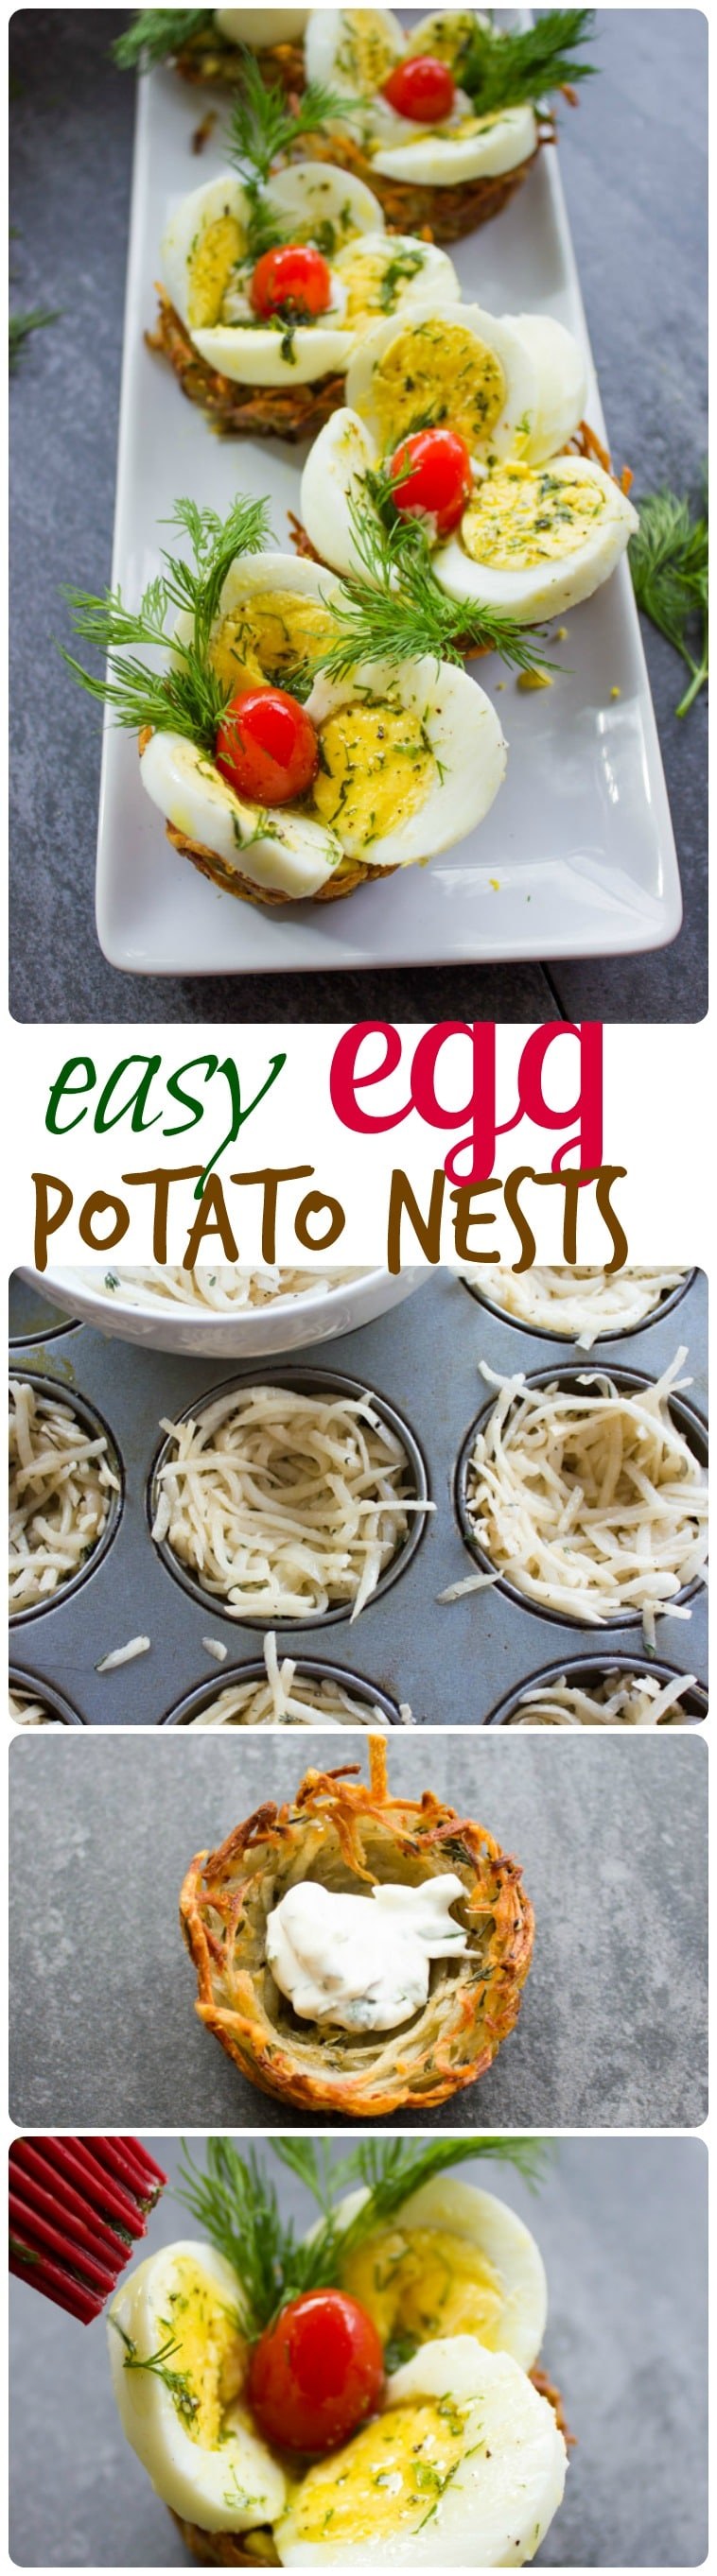 This Easter egg tart potato nests recipe is a must-have for your Easter table this year! A perfect finger food to share and enjoy with family and friends. #easterrecipes, #easterbrunch, #brunchrecipes,